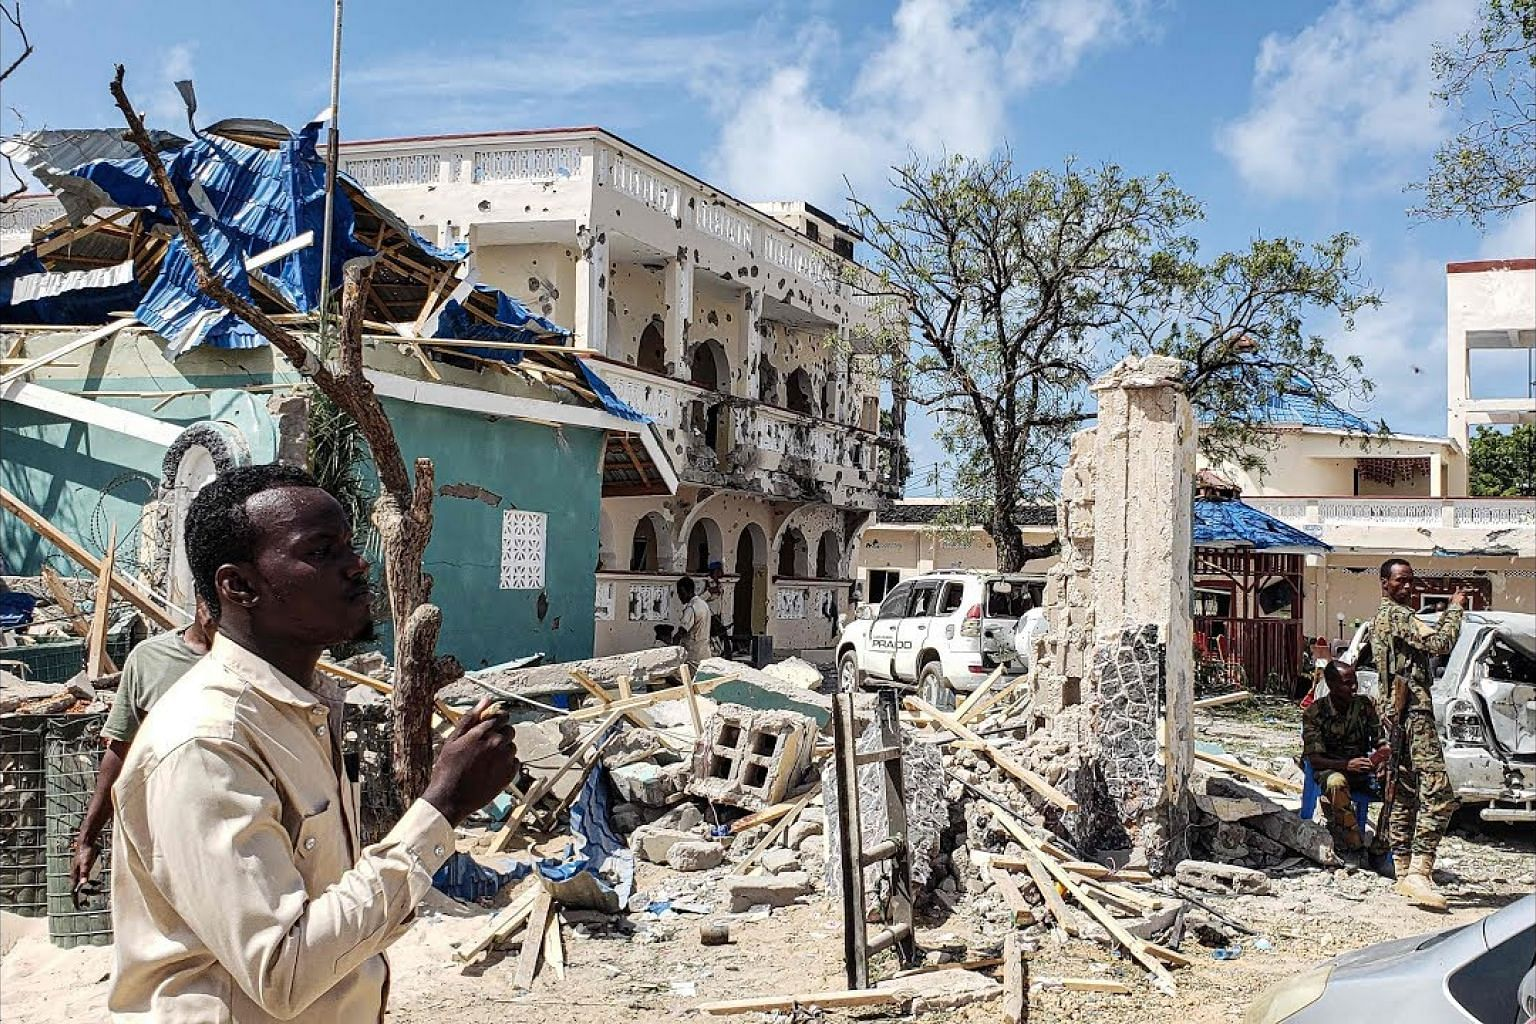 Somali hotel attack kills at least 26 people